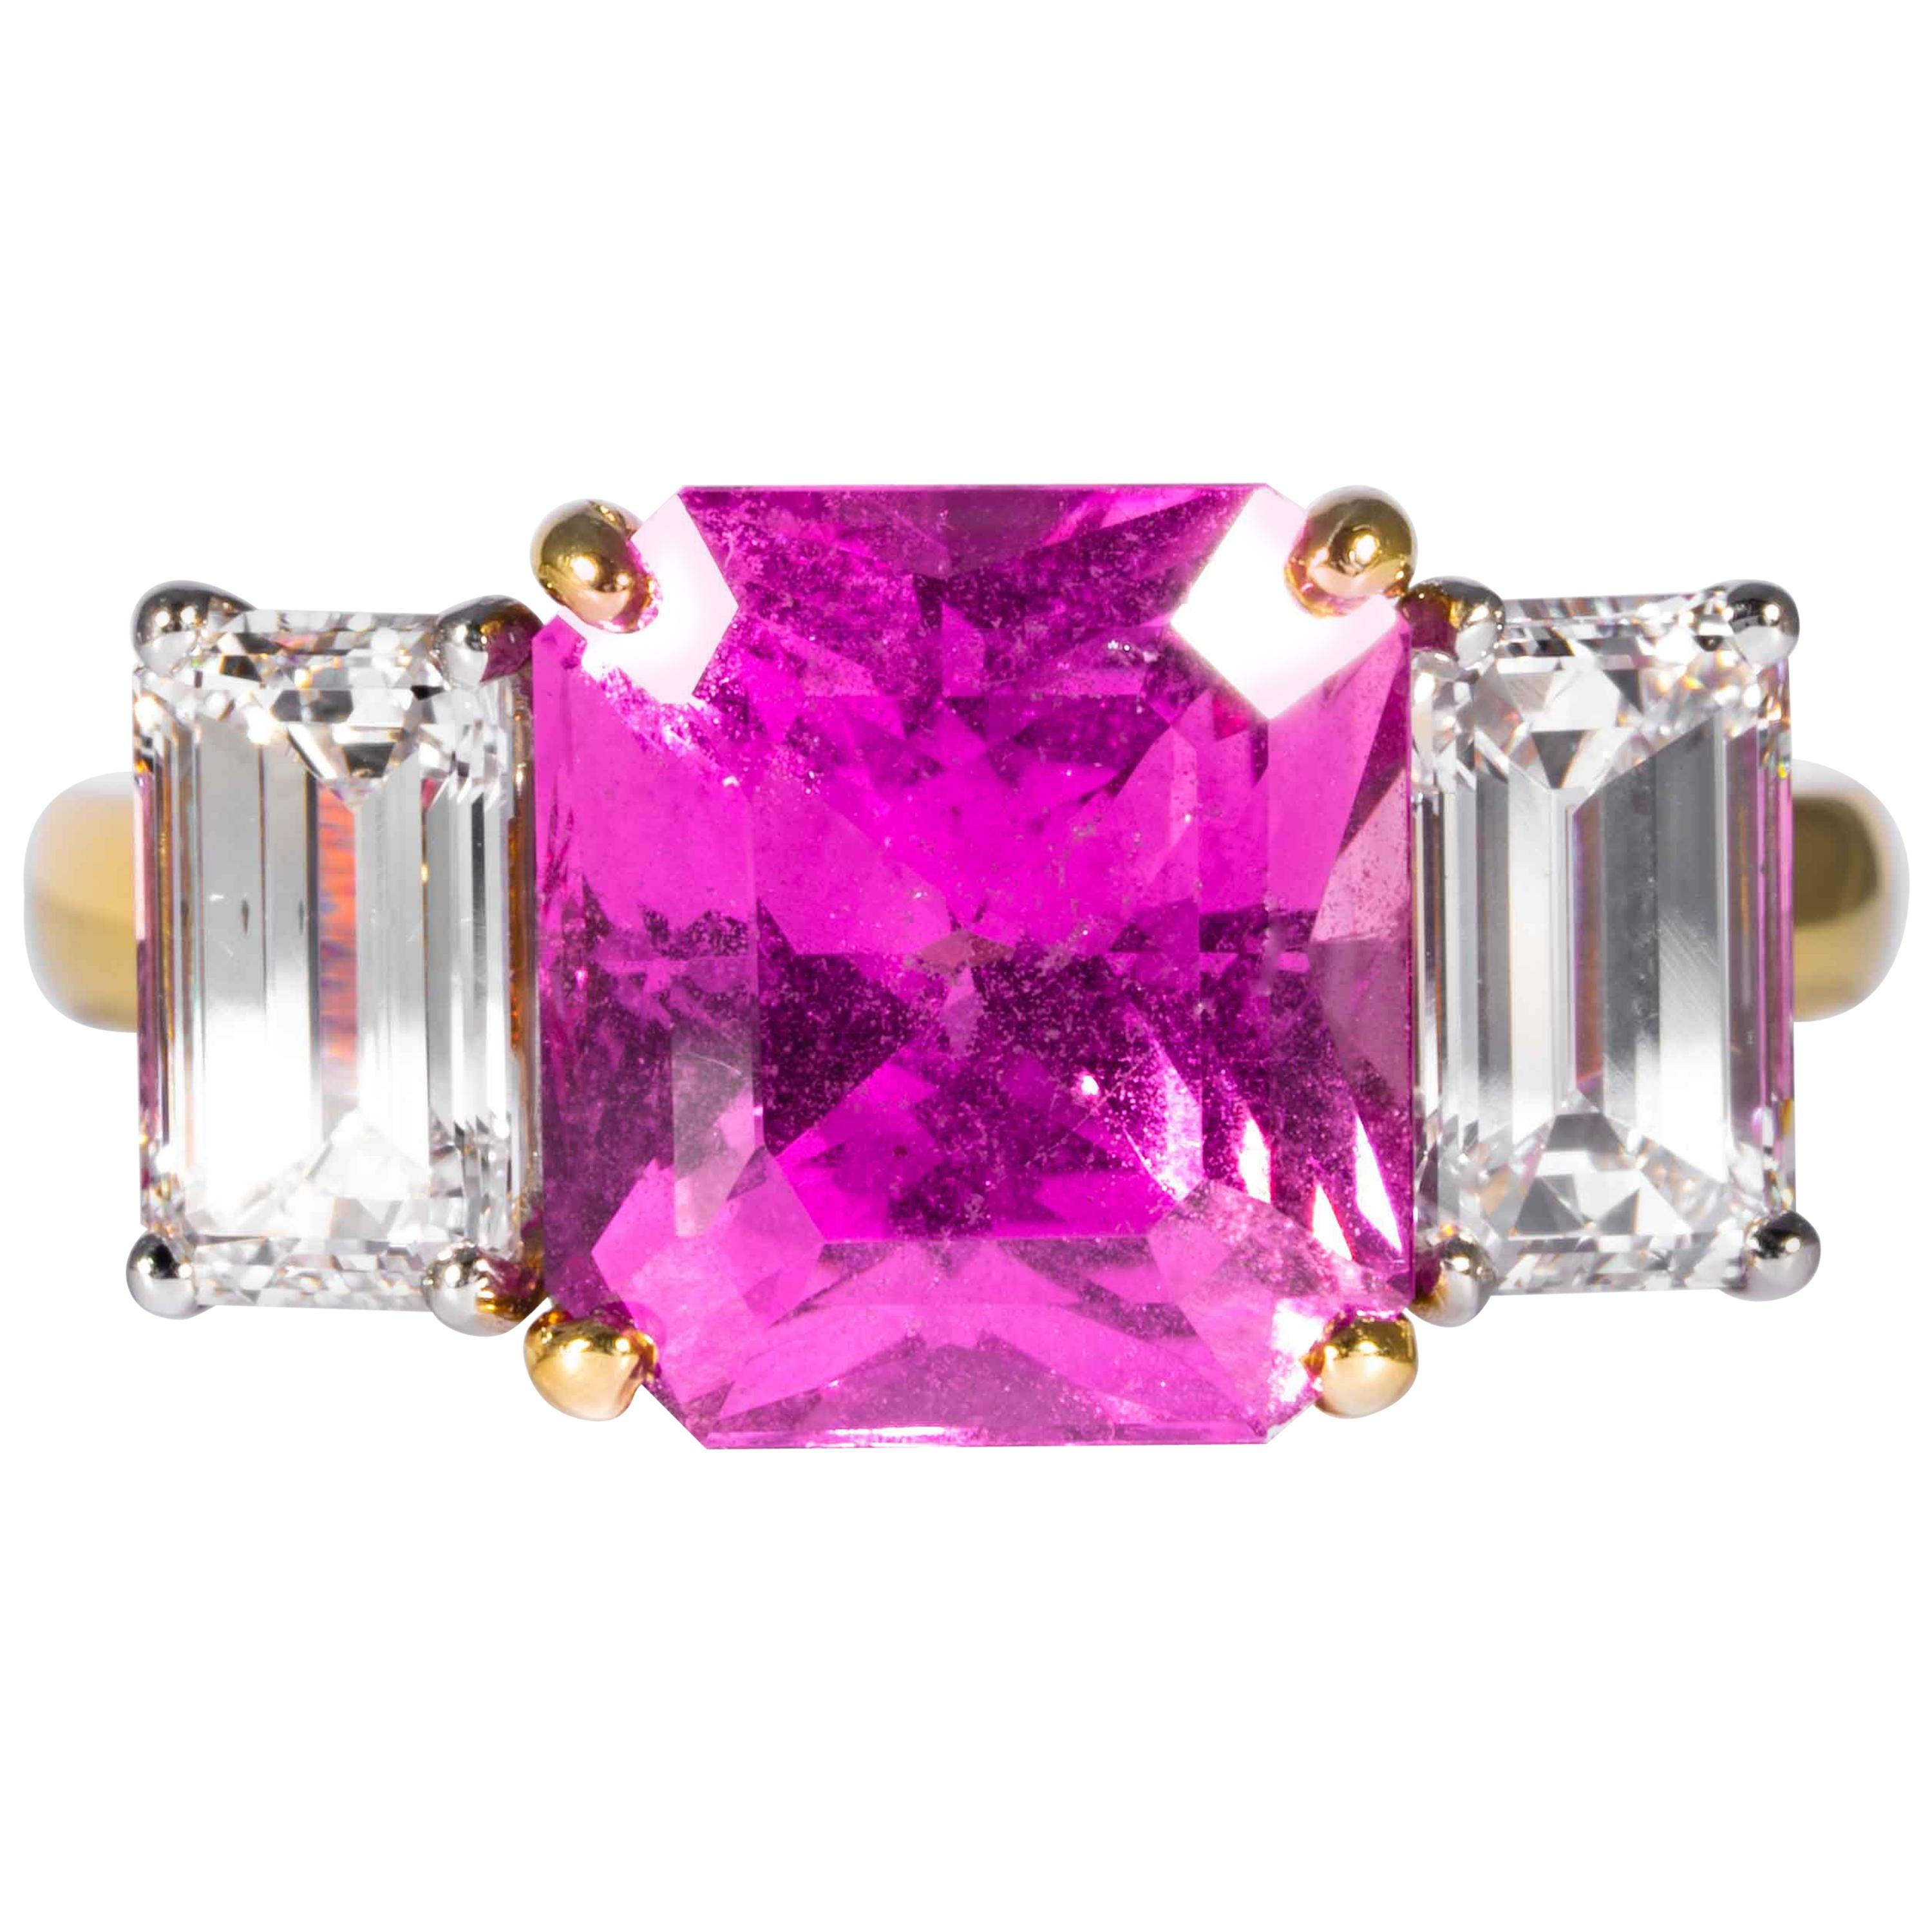 Shreve, Crump & Low 6.13 Carat GIA Certified Pink Sapphire and Diamond Ring